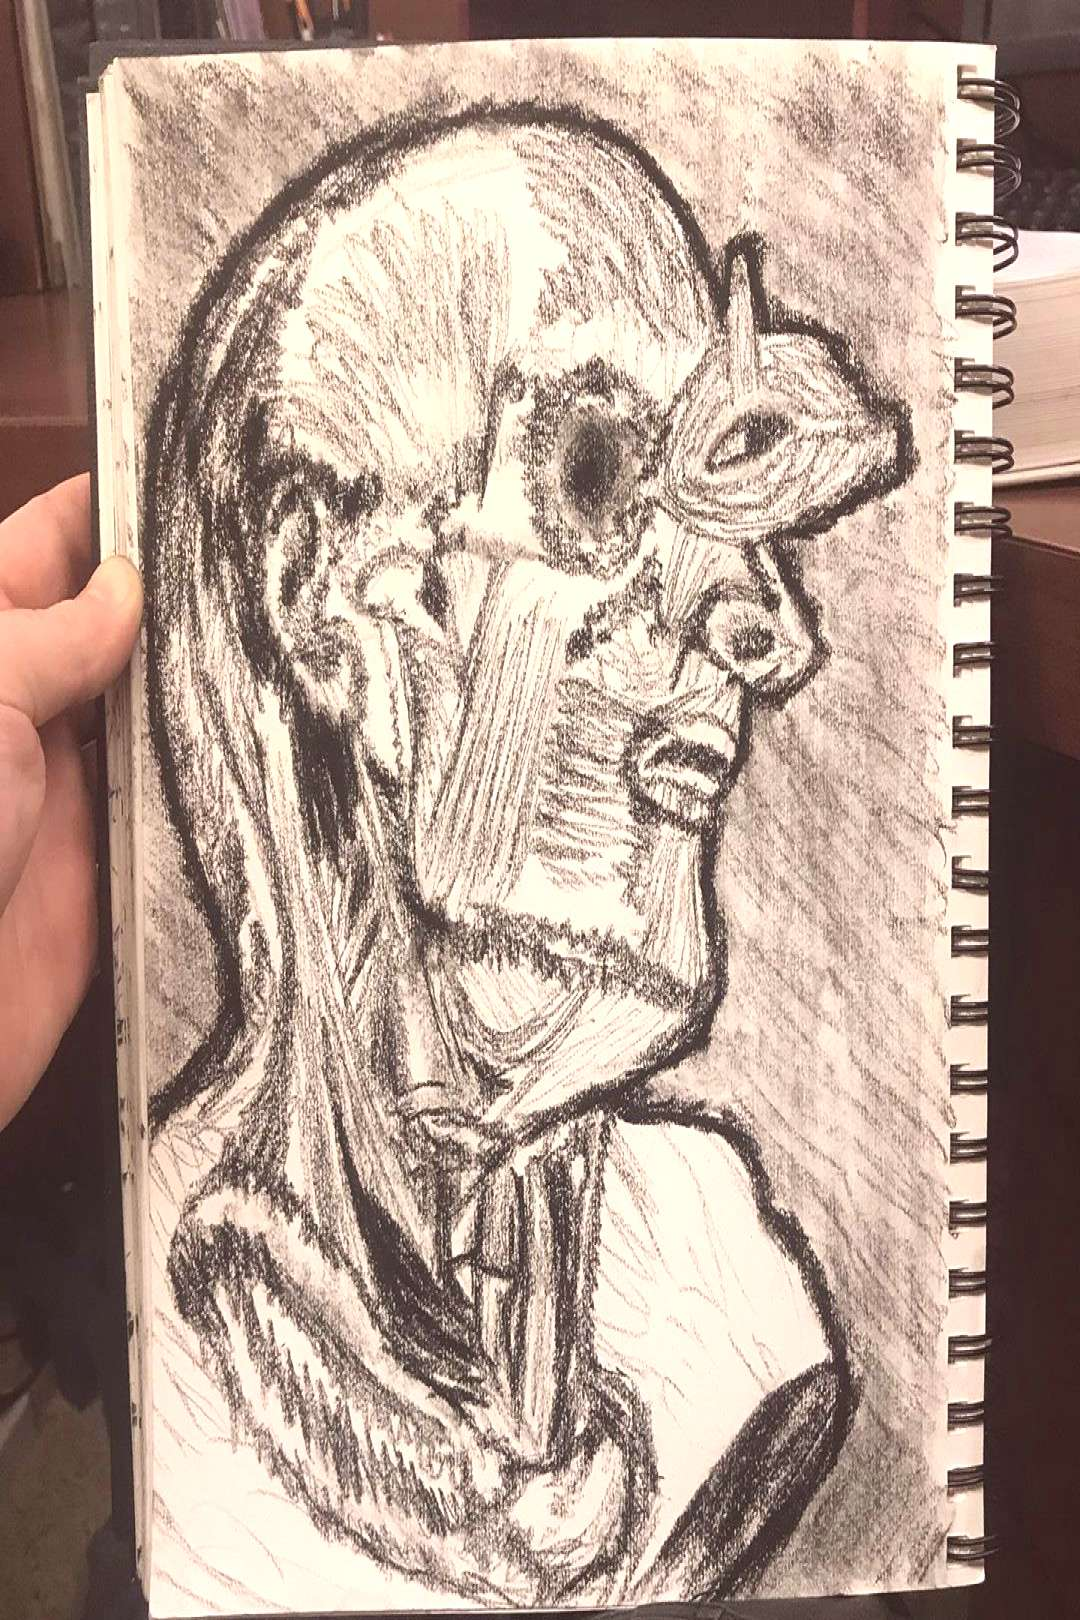 Been a while, but heres another #anatomydrawing #sketchbook